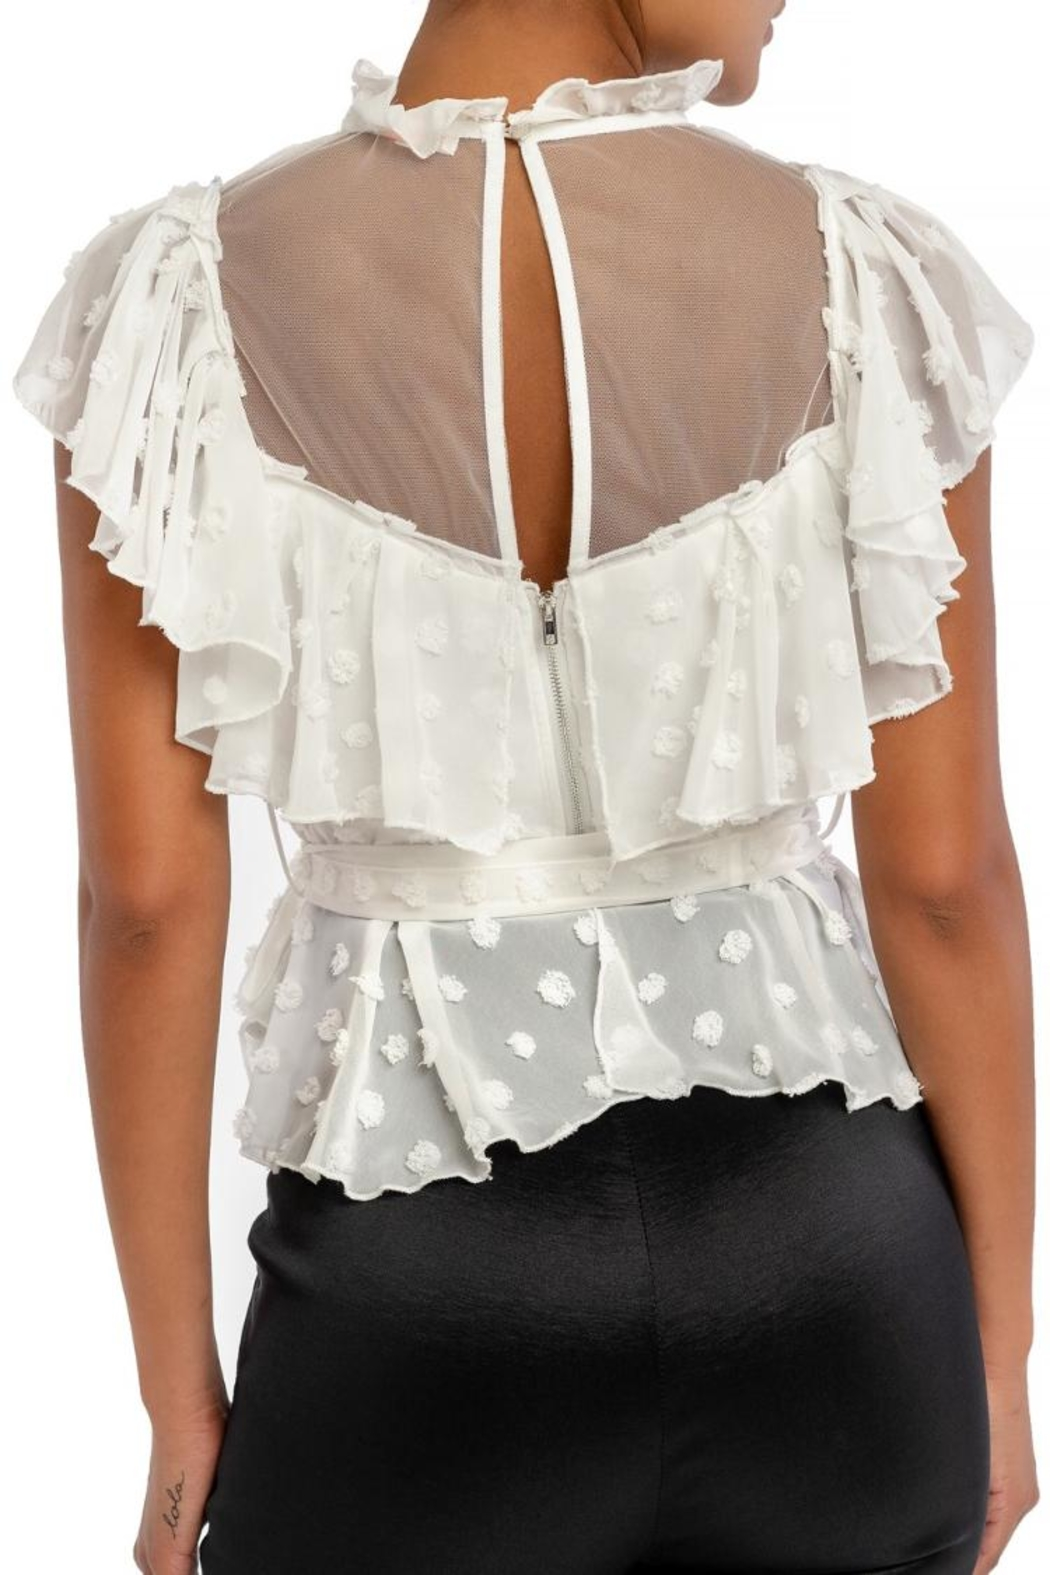 luxxel Ruffle Puff Wrap-Top - Front Full Image